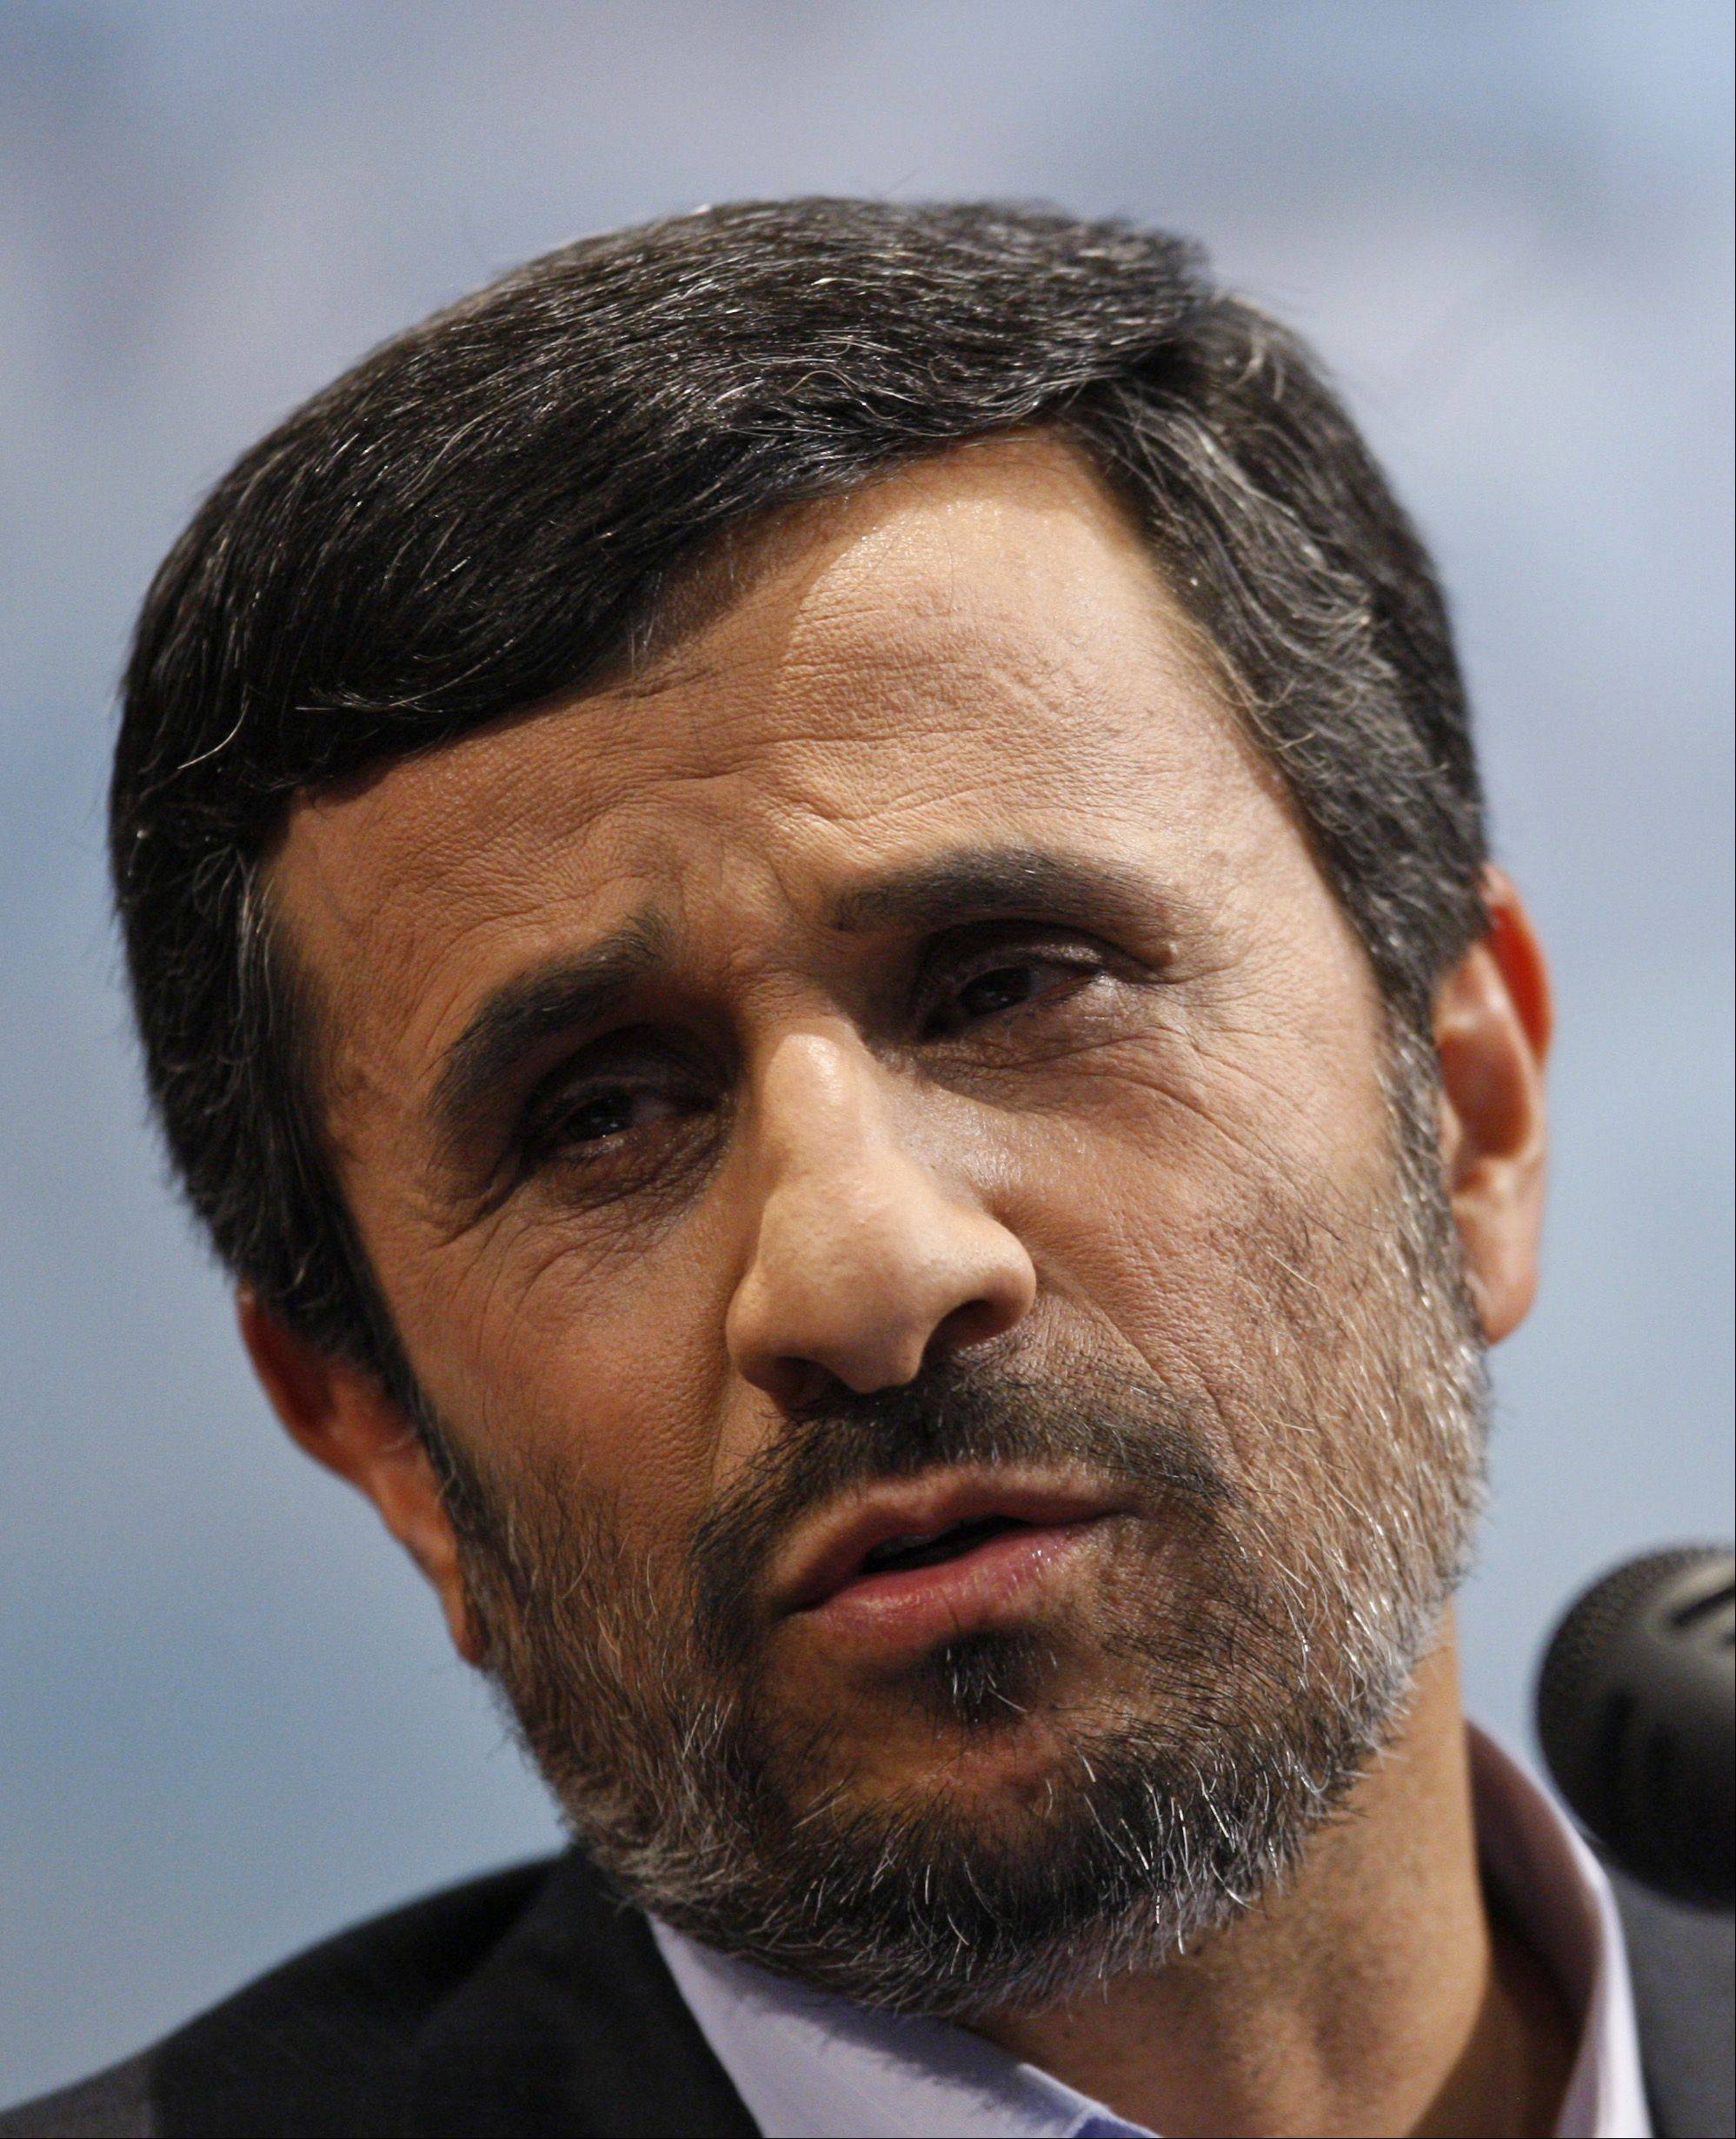 President Mahmoud Ahmadinejad said Monday that he�s ready to take the risk of being the first Iranian astronaut sent into space as part of Iran�s goal of a manned space flight.